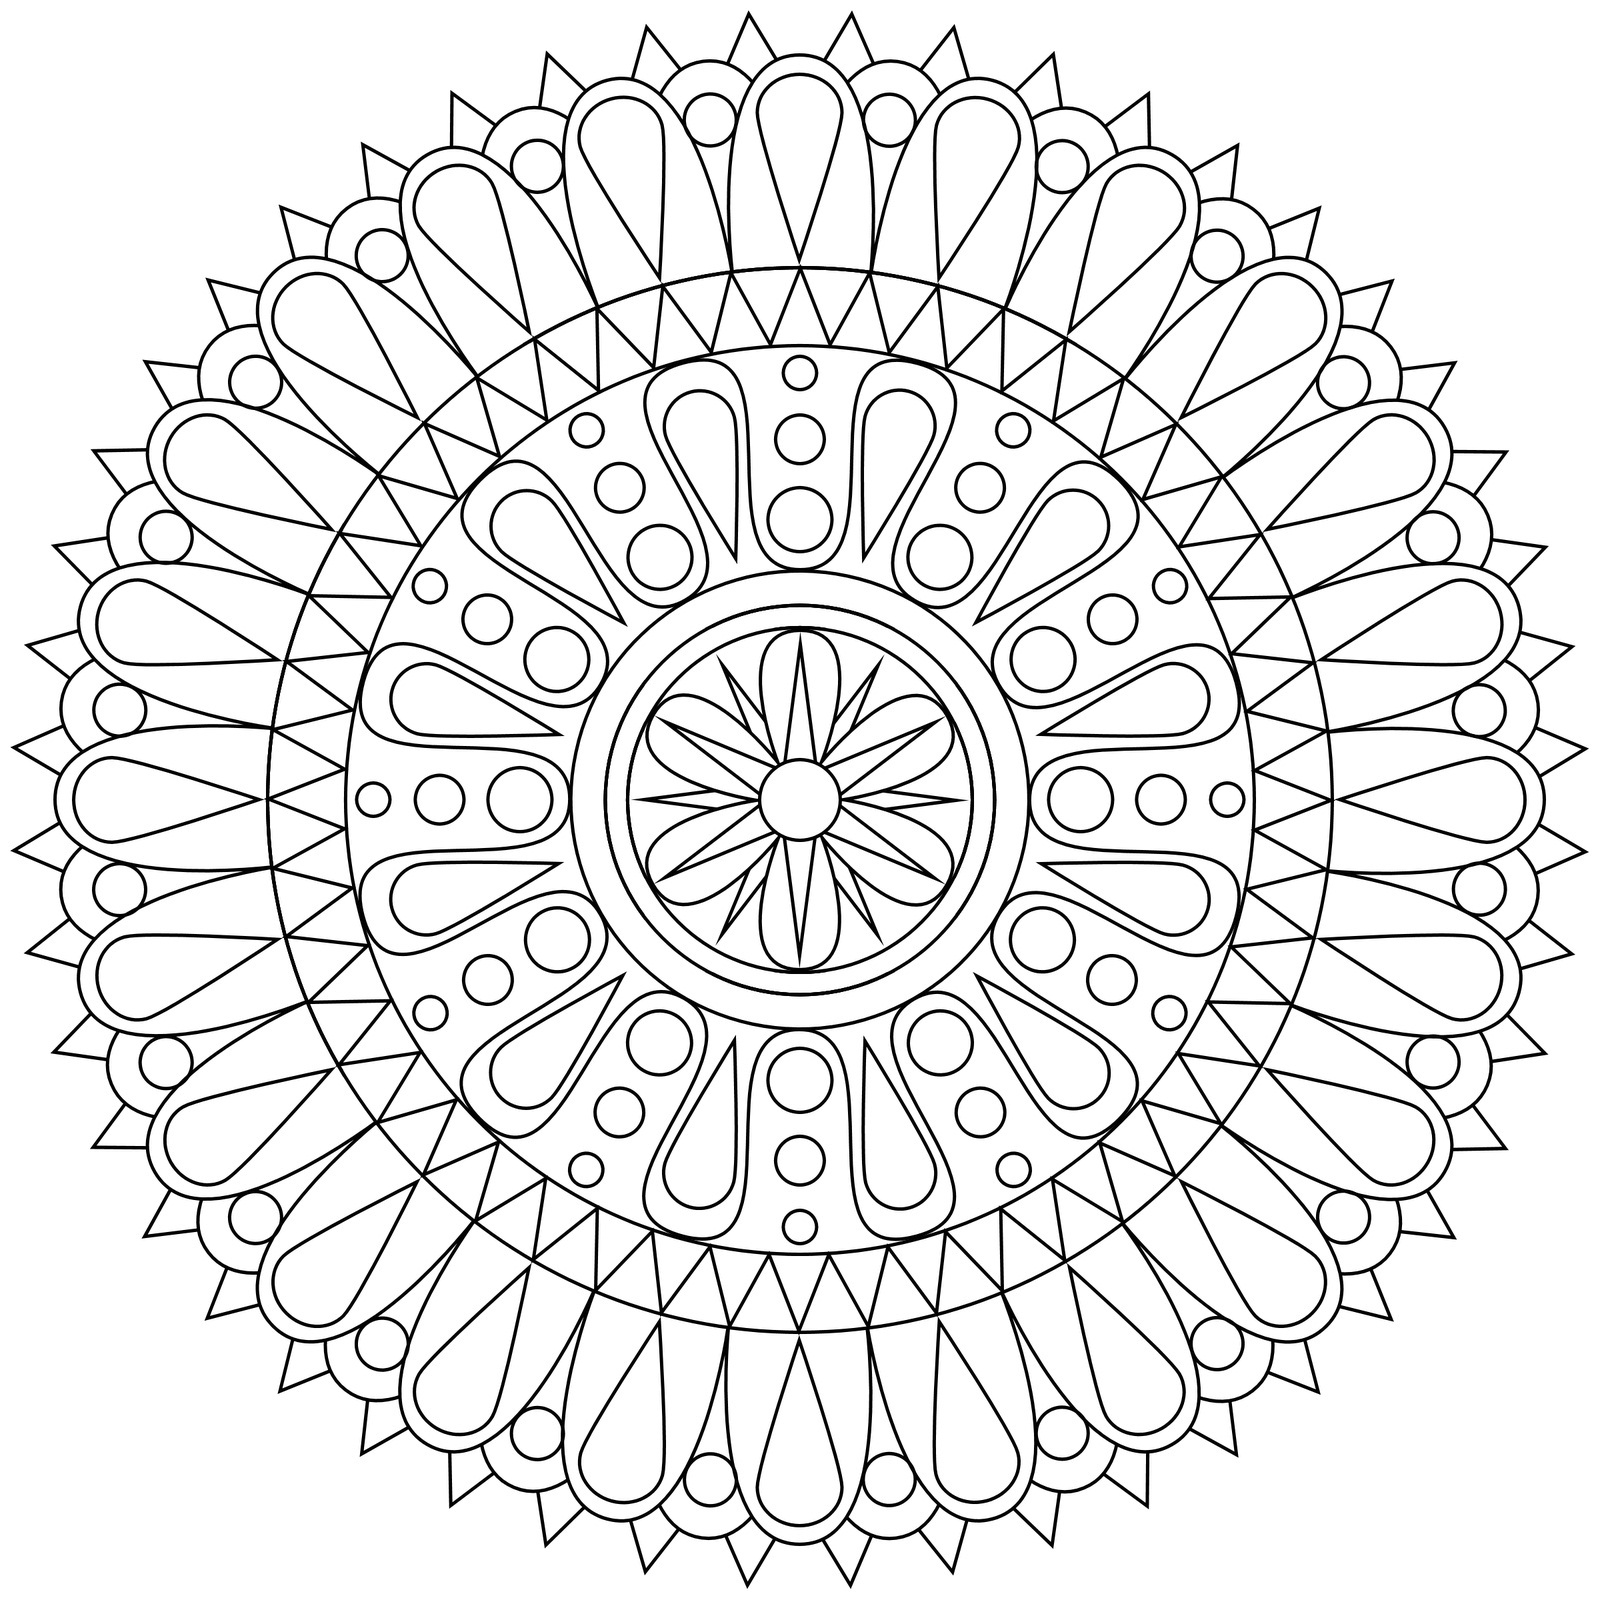 coloring pages geometric shapes - photo#5